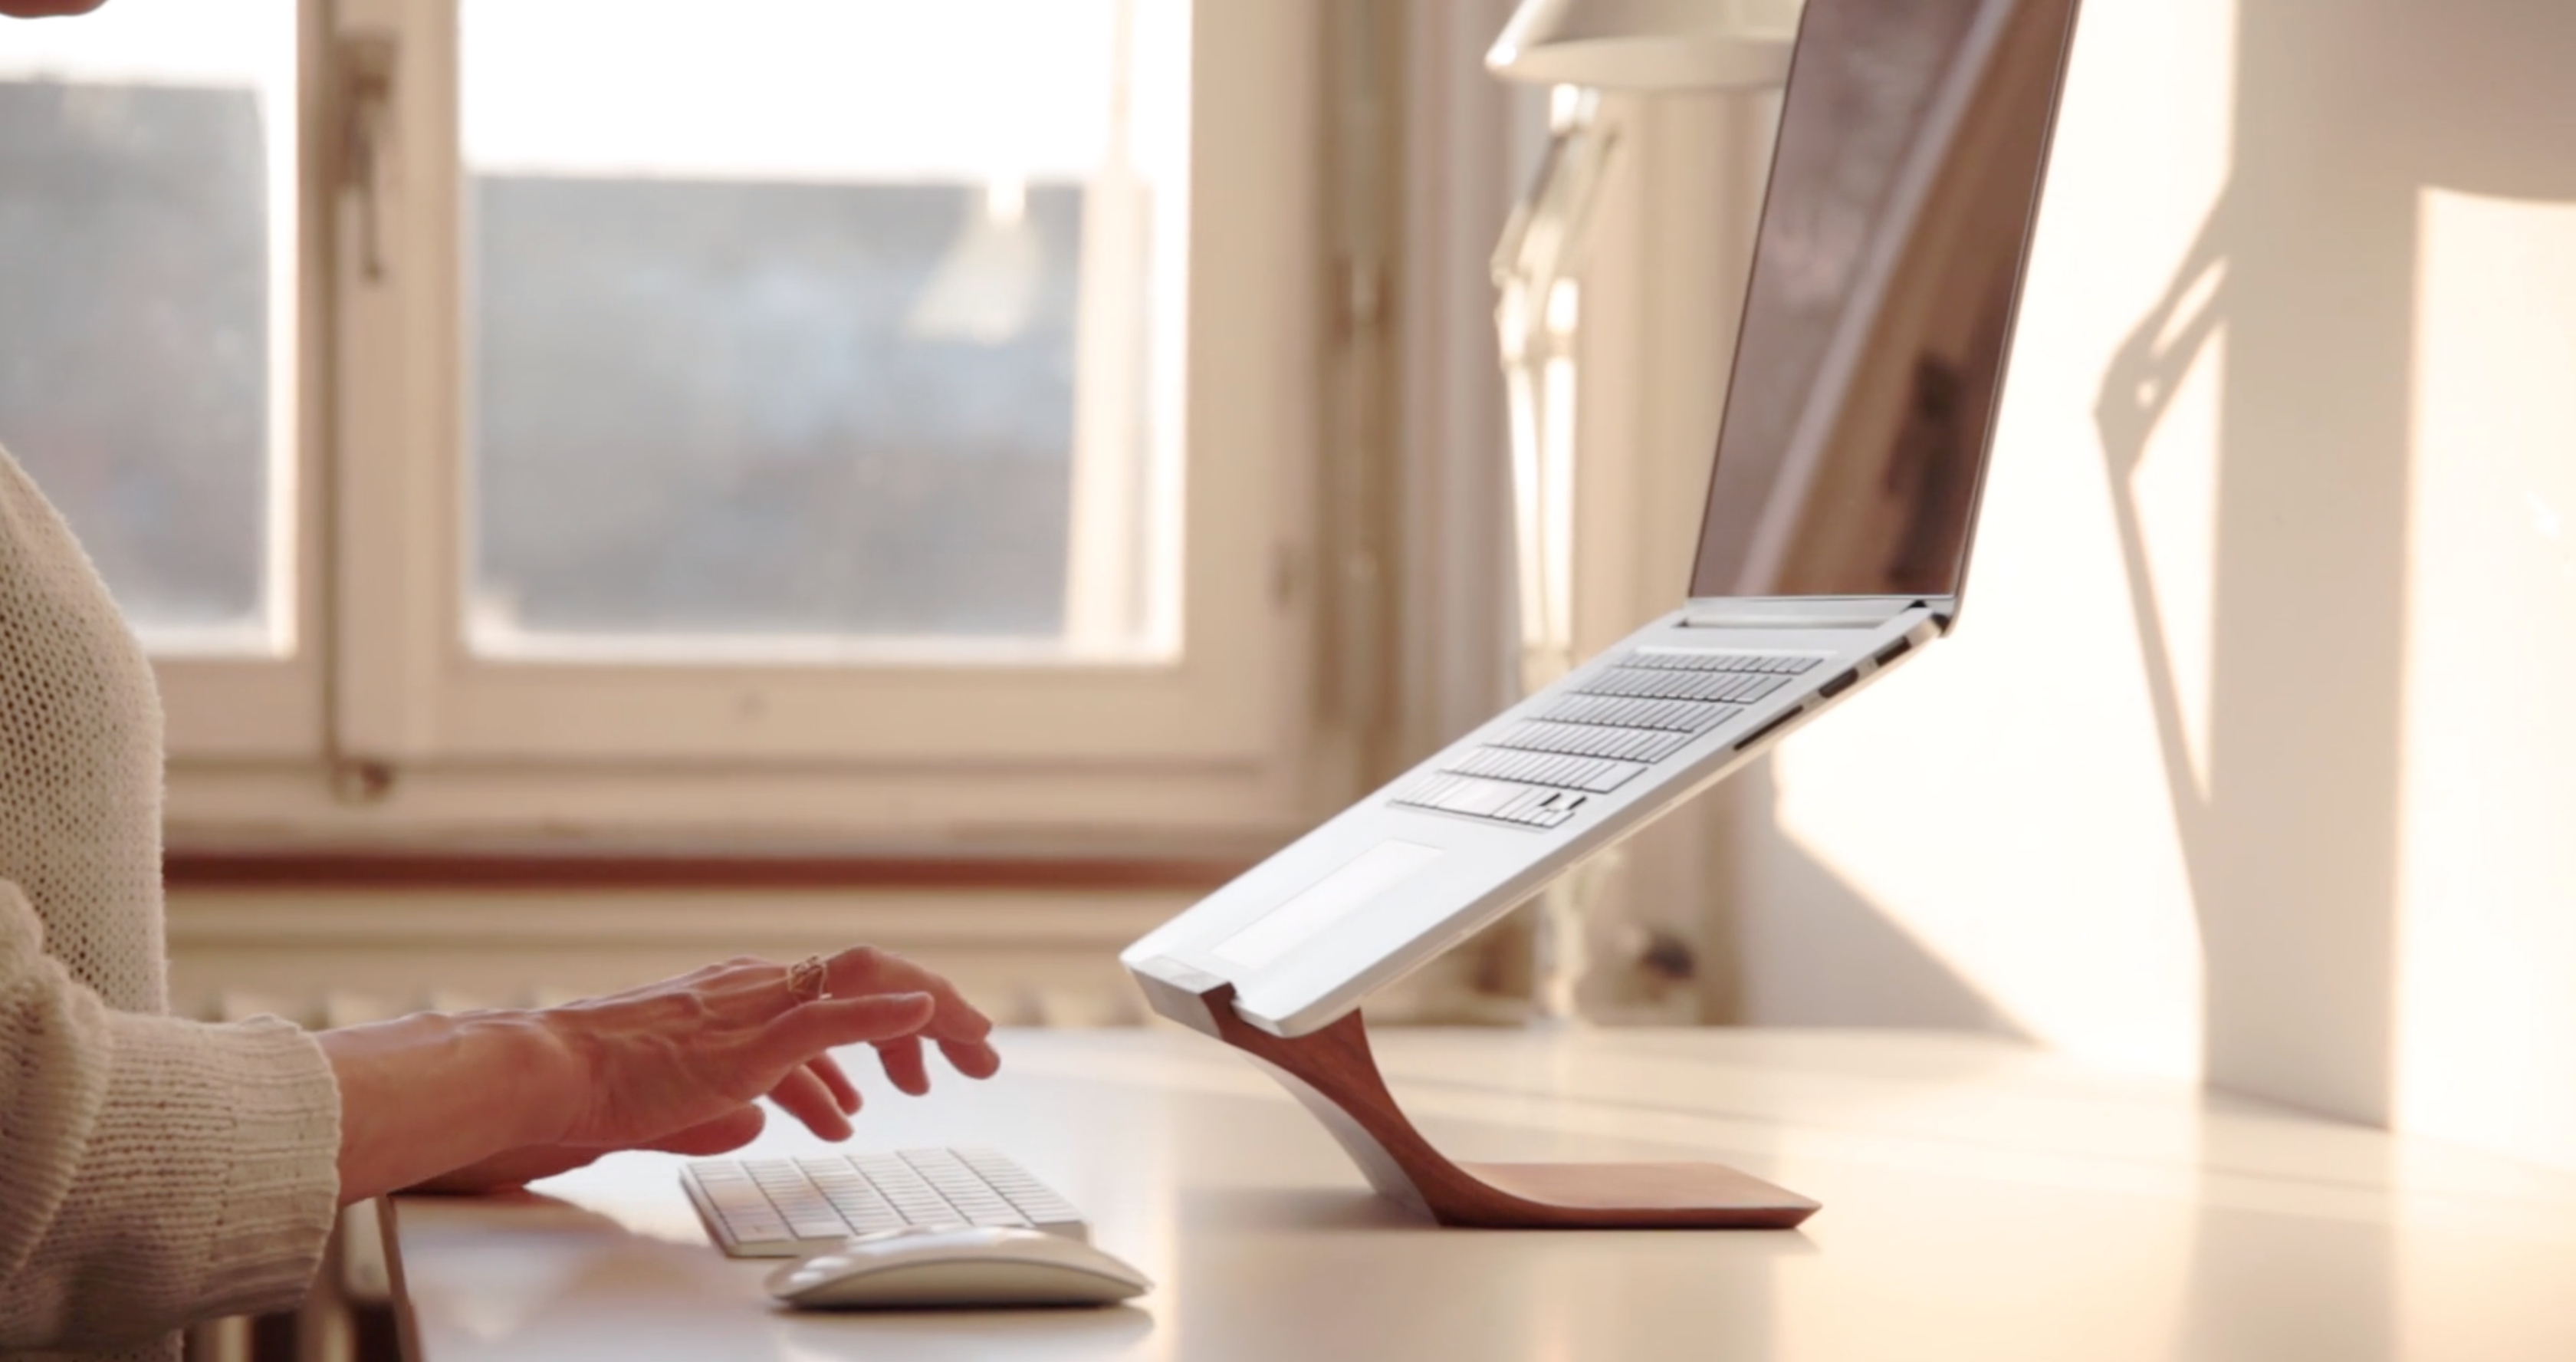 Yohann-MacBook-stand-desk